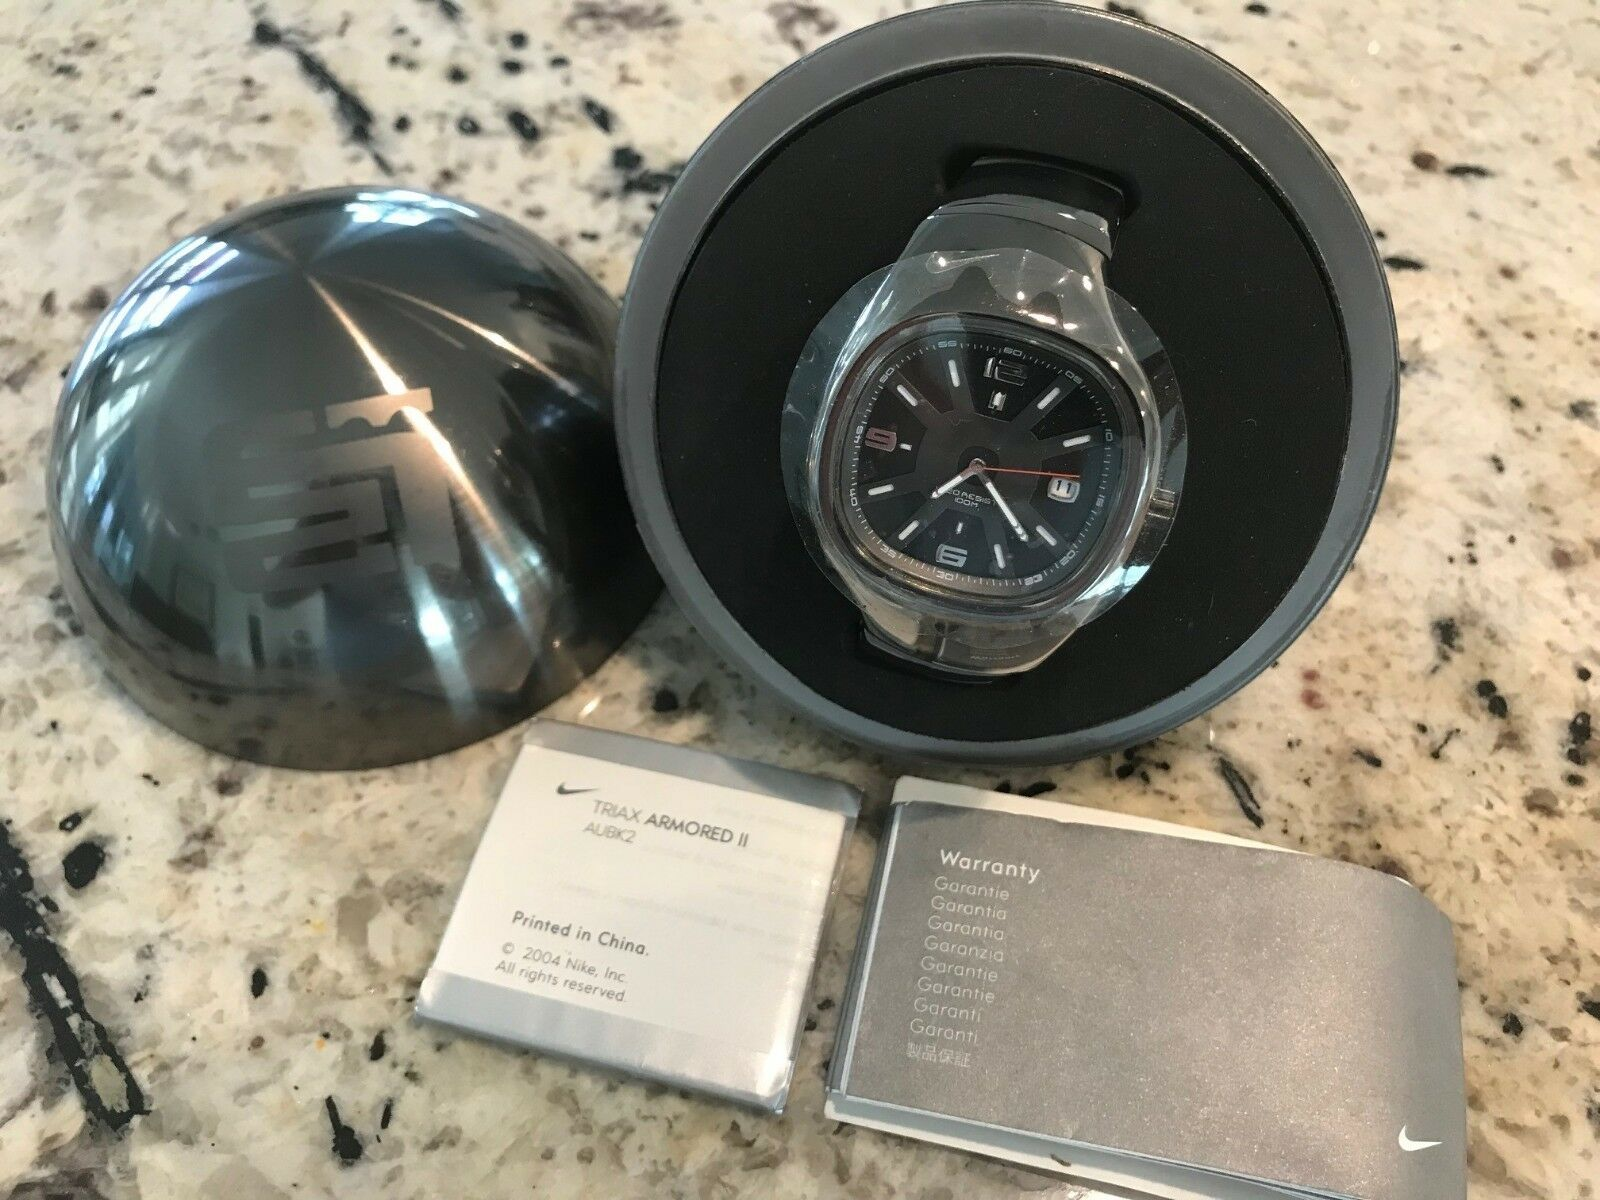 RARE BRAND NEW Lebron 1 Nike Watch (First Ever Lebron Nike Watch Release)